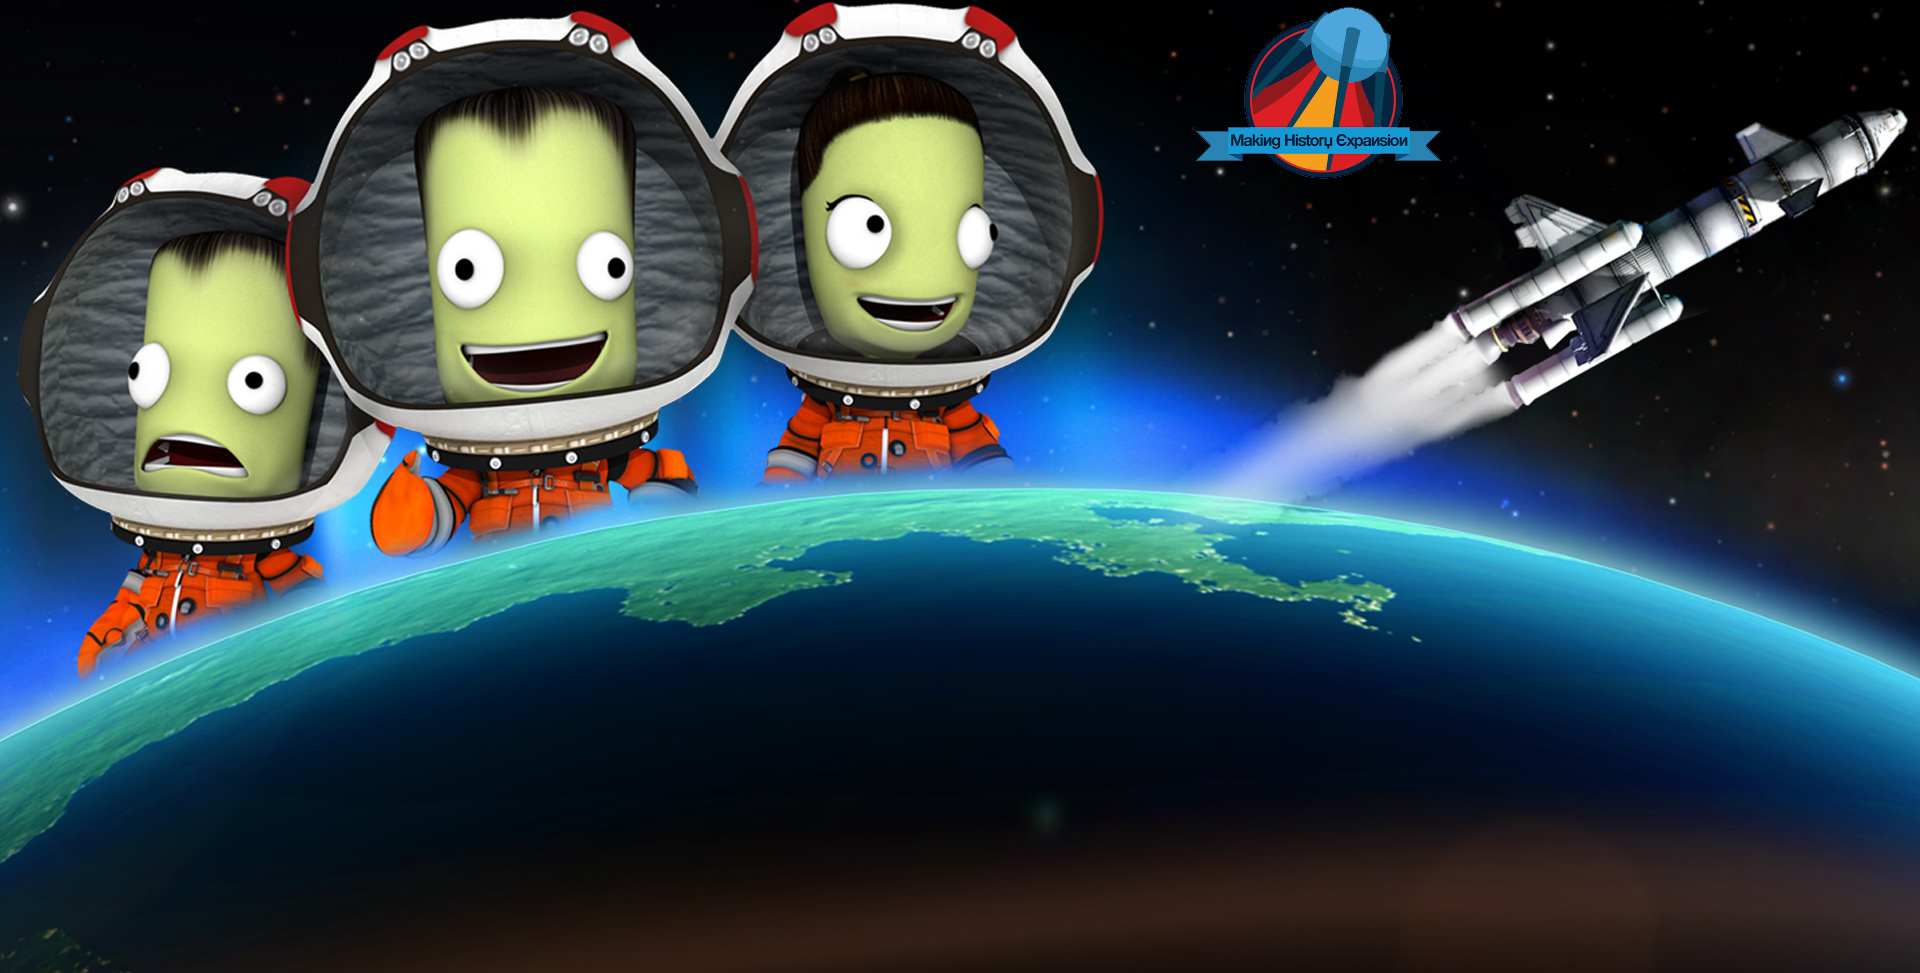 kerbal space program free download - HD 1920×973